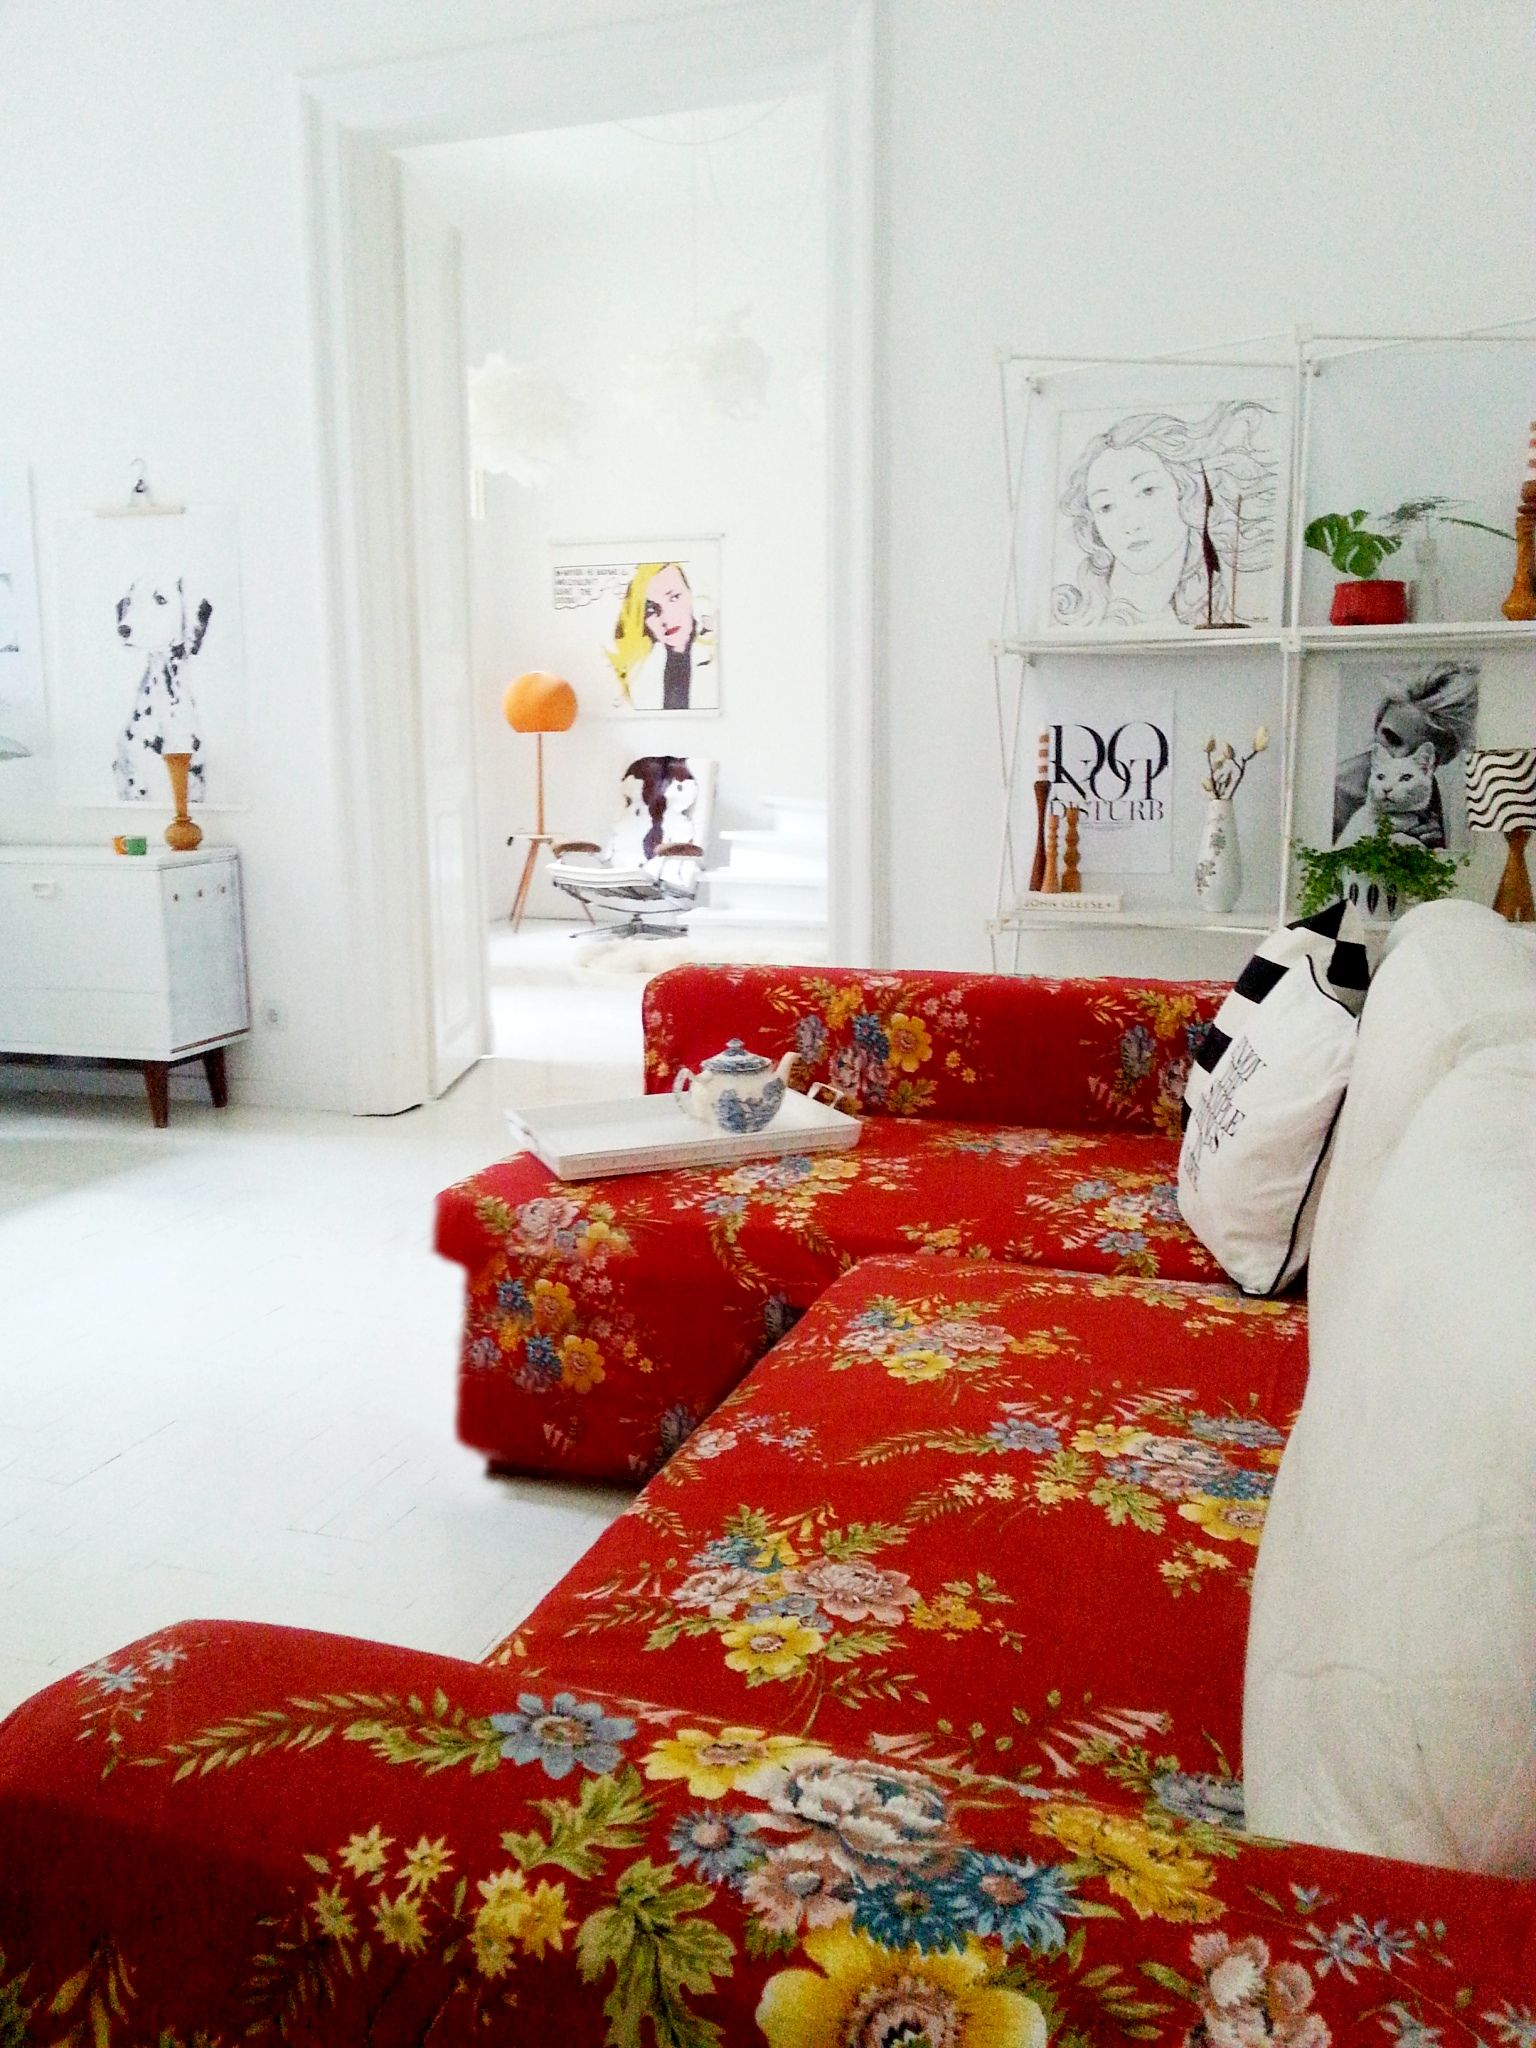 This Stunning Red Floral Sofa Looks Amazing In A Neutral White Apartment.  WoWu2026 More